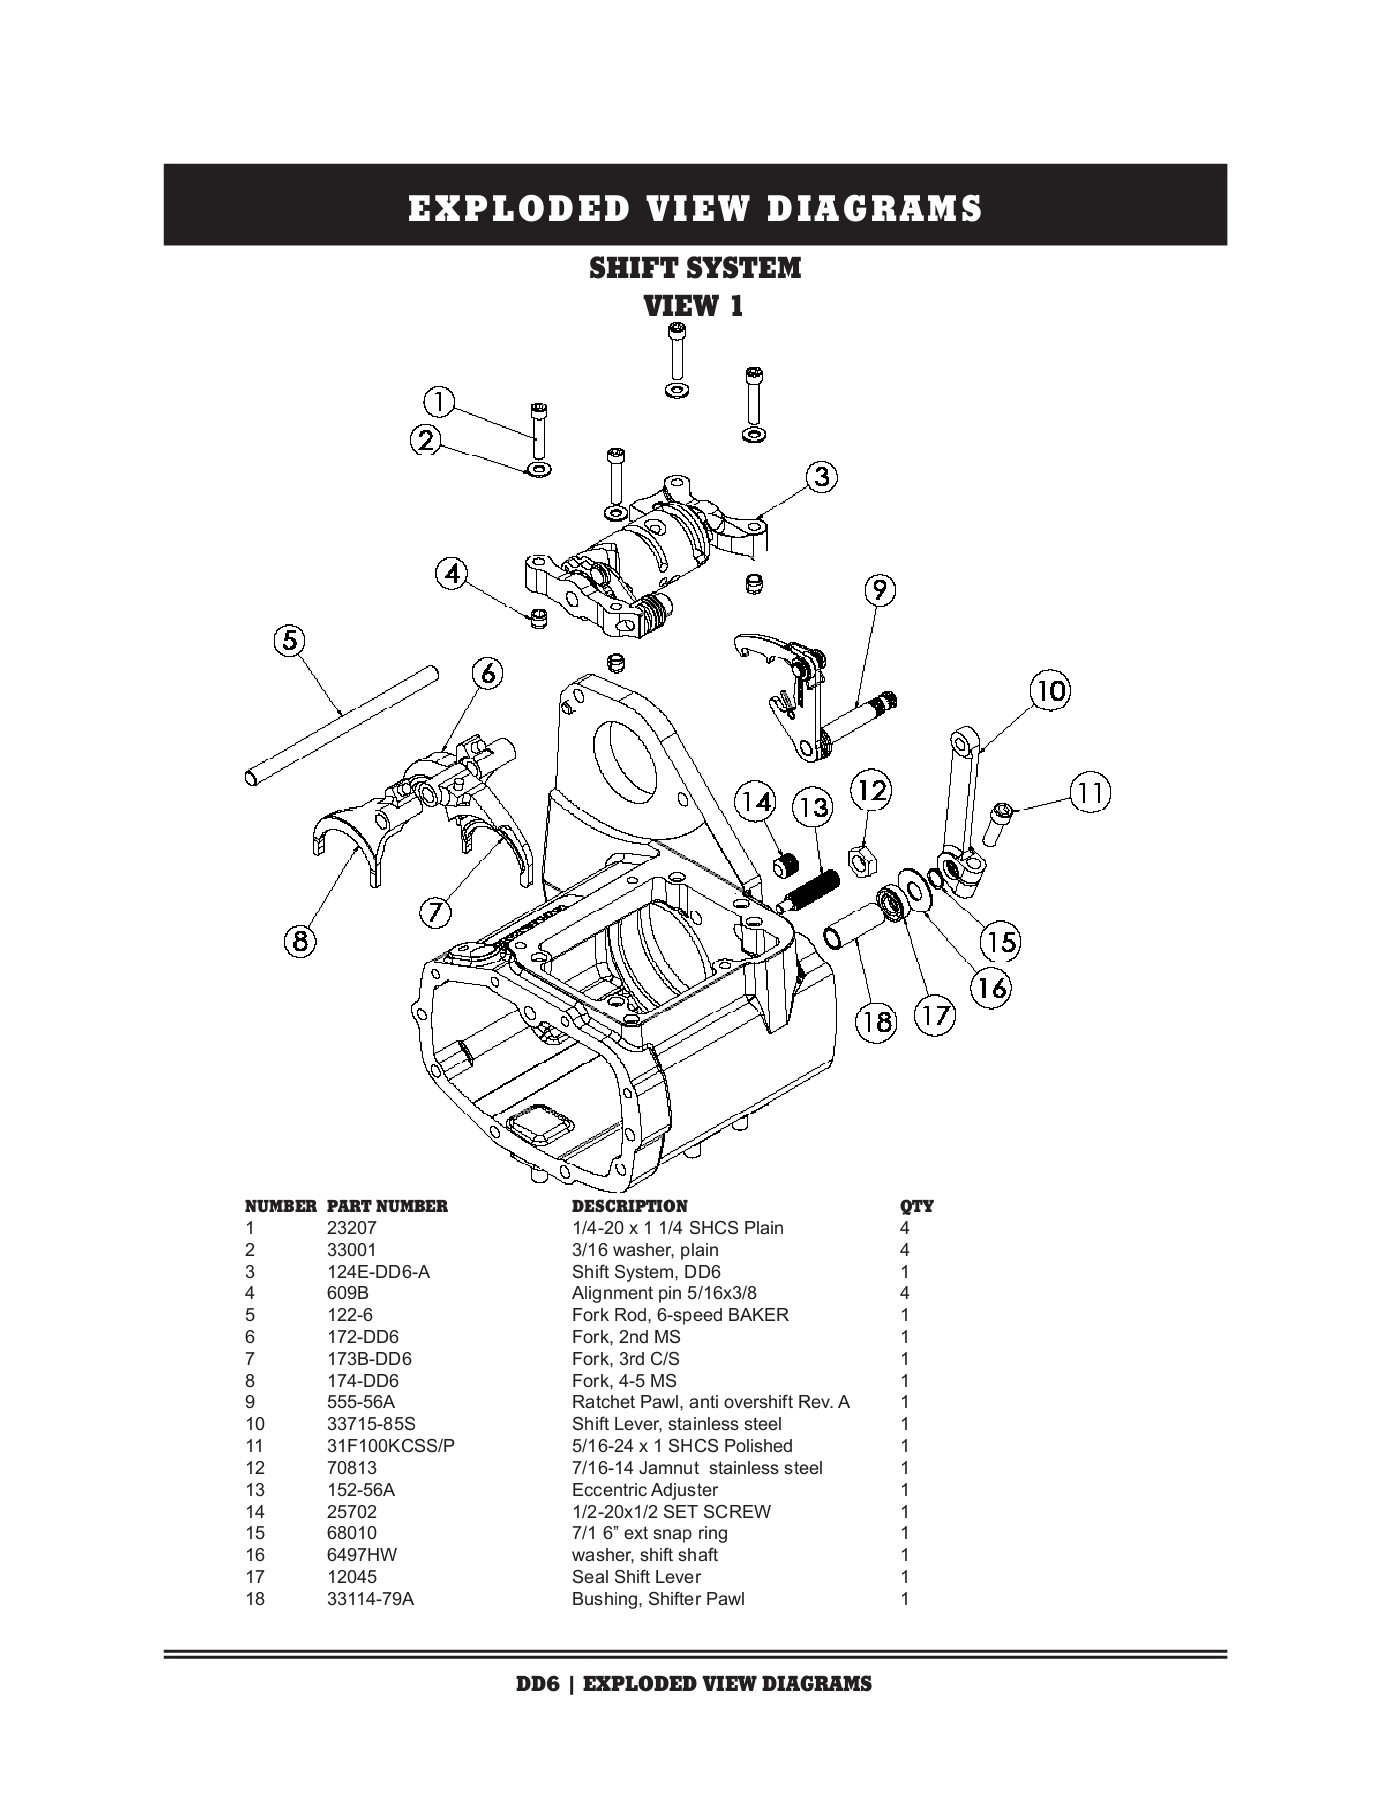 Harley Davidson 6 Speed Transmission Diagram : harley, davidson, speed, transmission, diagram, Exploded, Diagrams, BAKER, DRIVETRAIN, Pages, Download, FlipHTML5